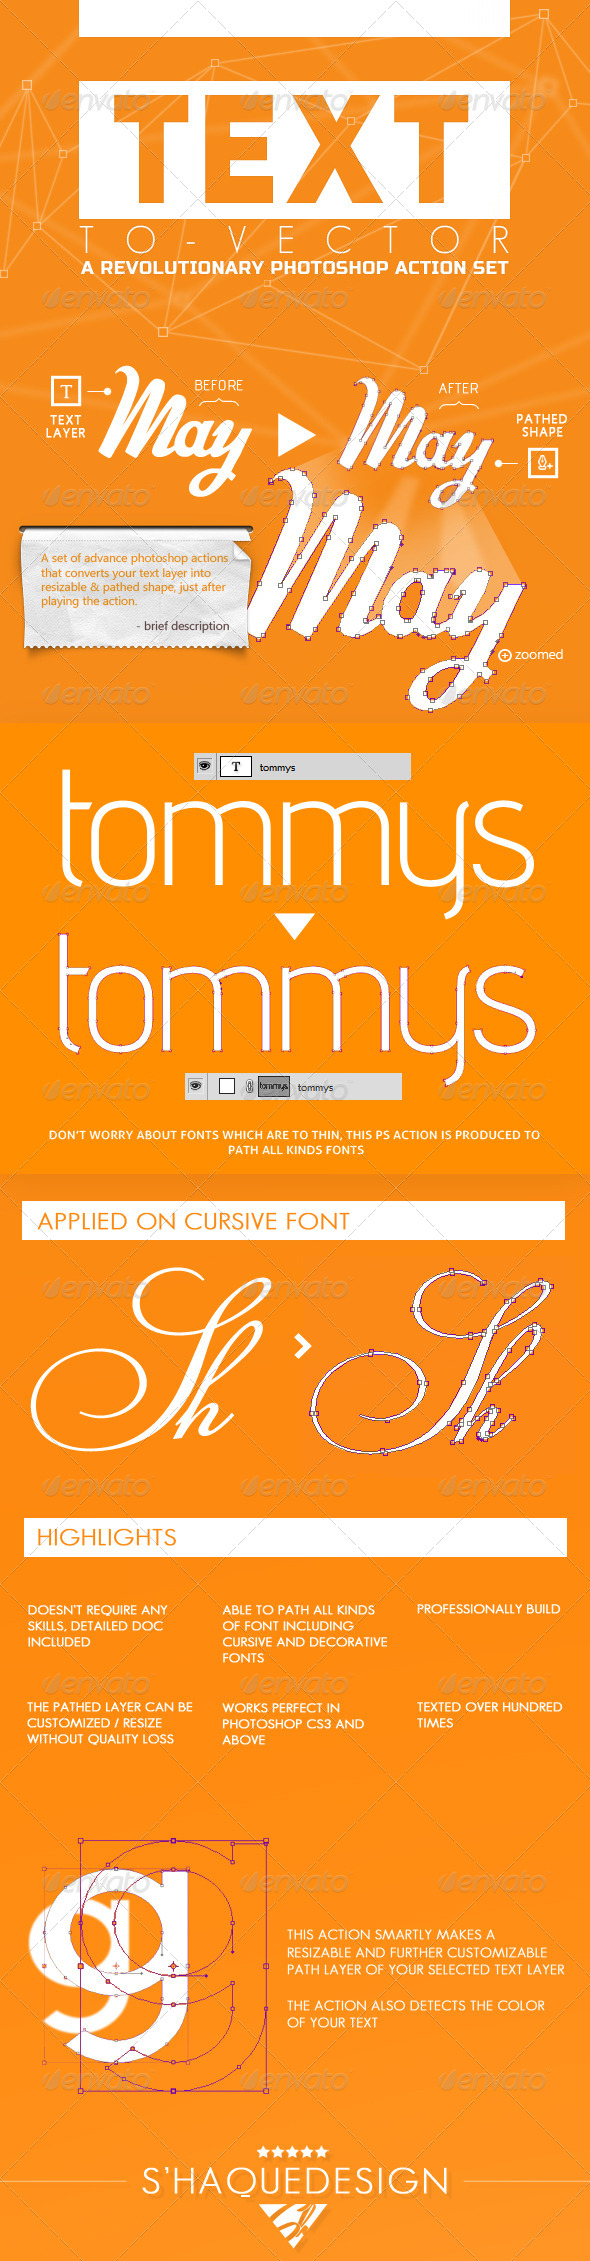 GraphicRiver Text To Vector PS Actions 5957314